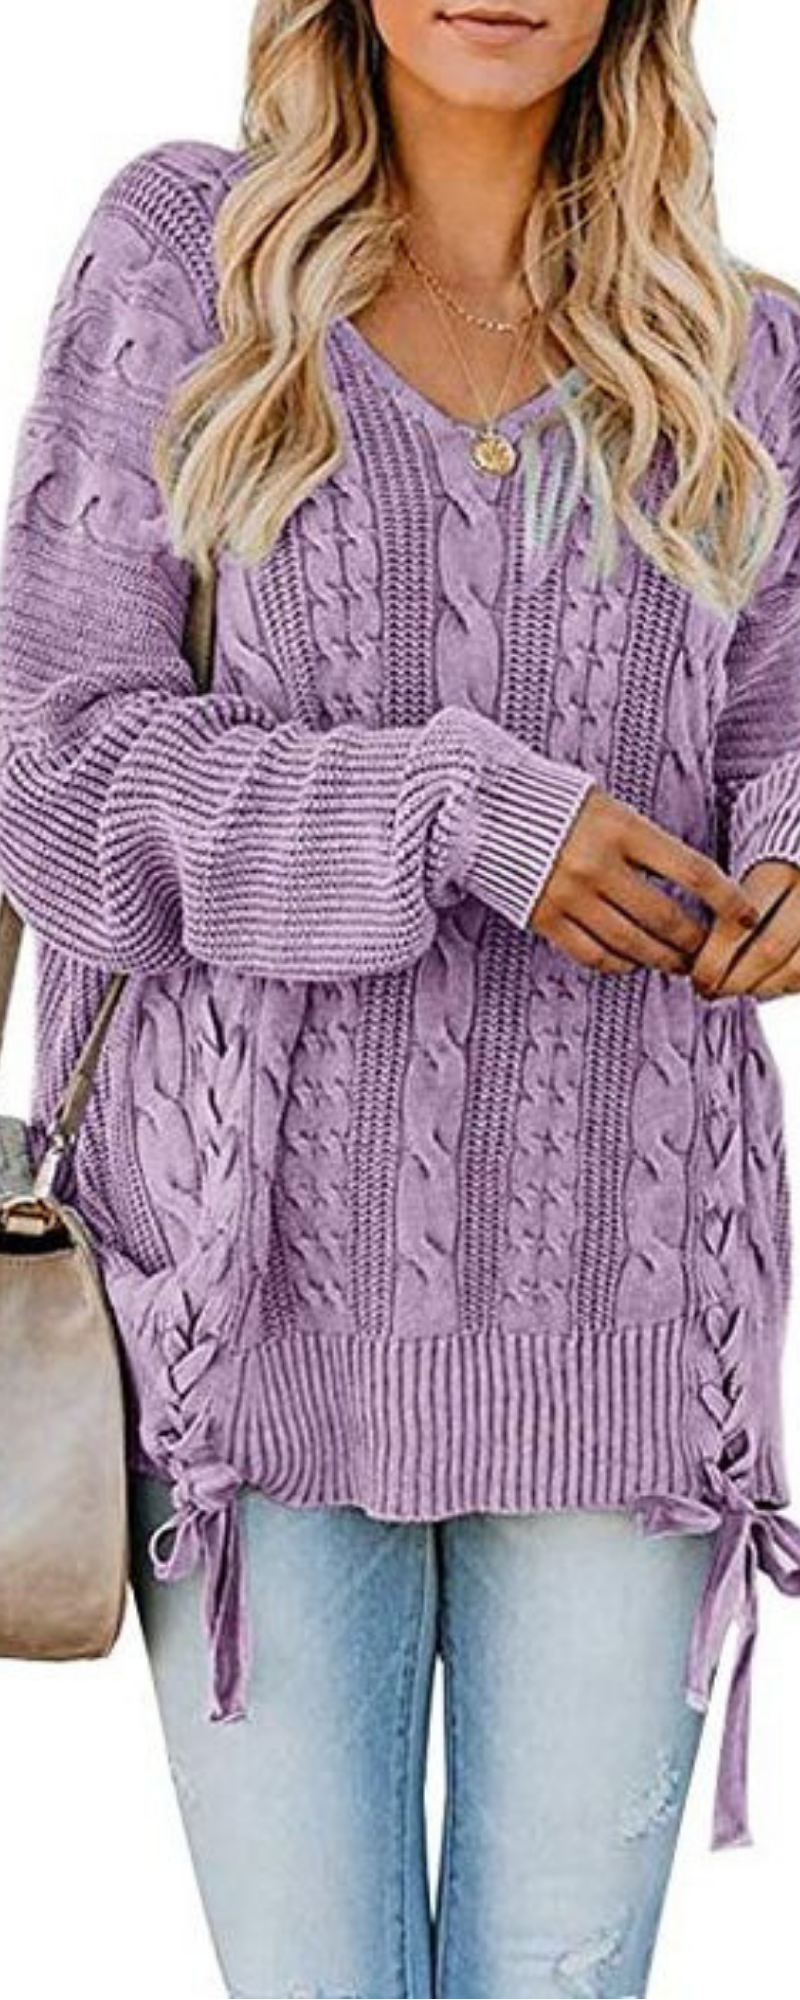 506d6ded289 Women s Pullover Sweaters Plus Size Cable Knit V Neck Lace Up Long Sleeve  Fall Jumper Tops